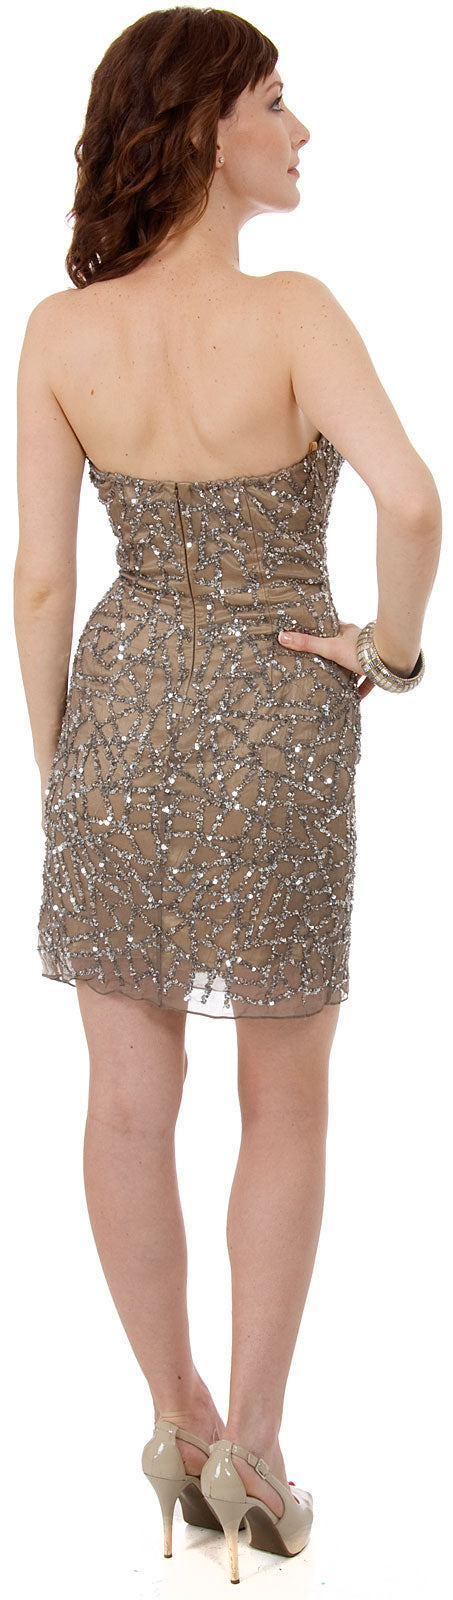 Back image of Strapless Sequined Short Prom & Party Dress.